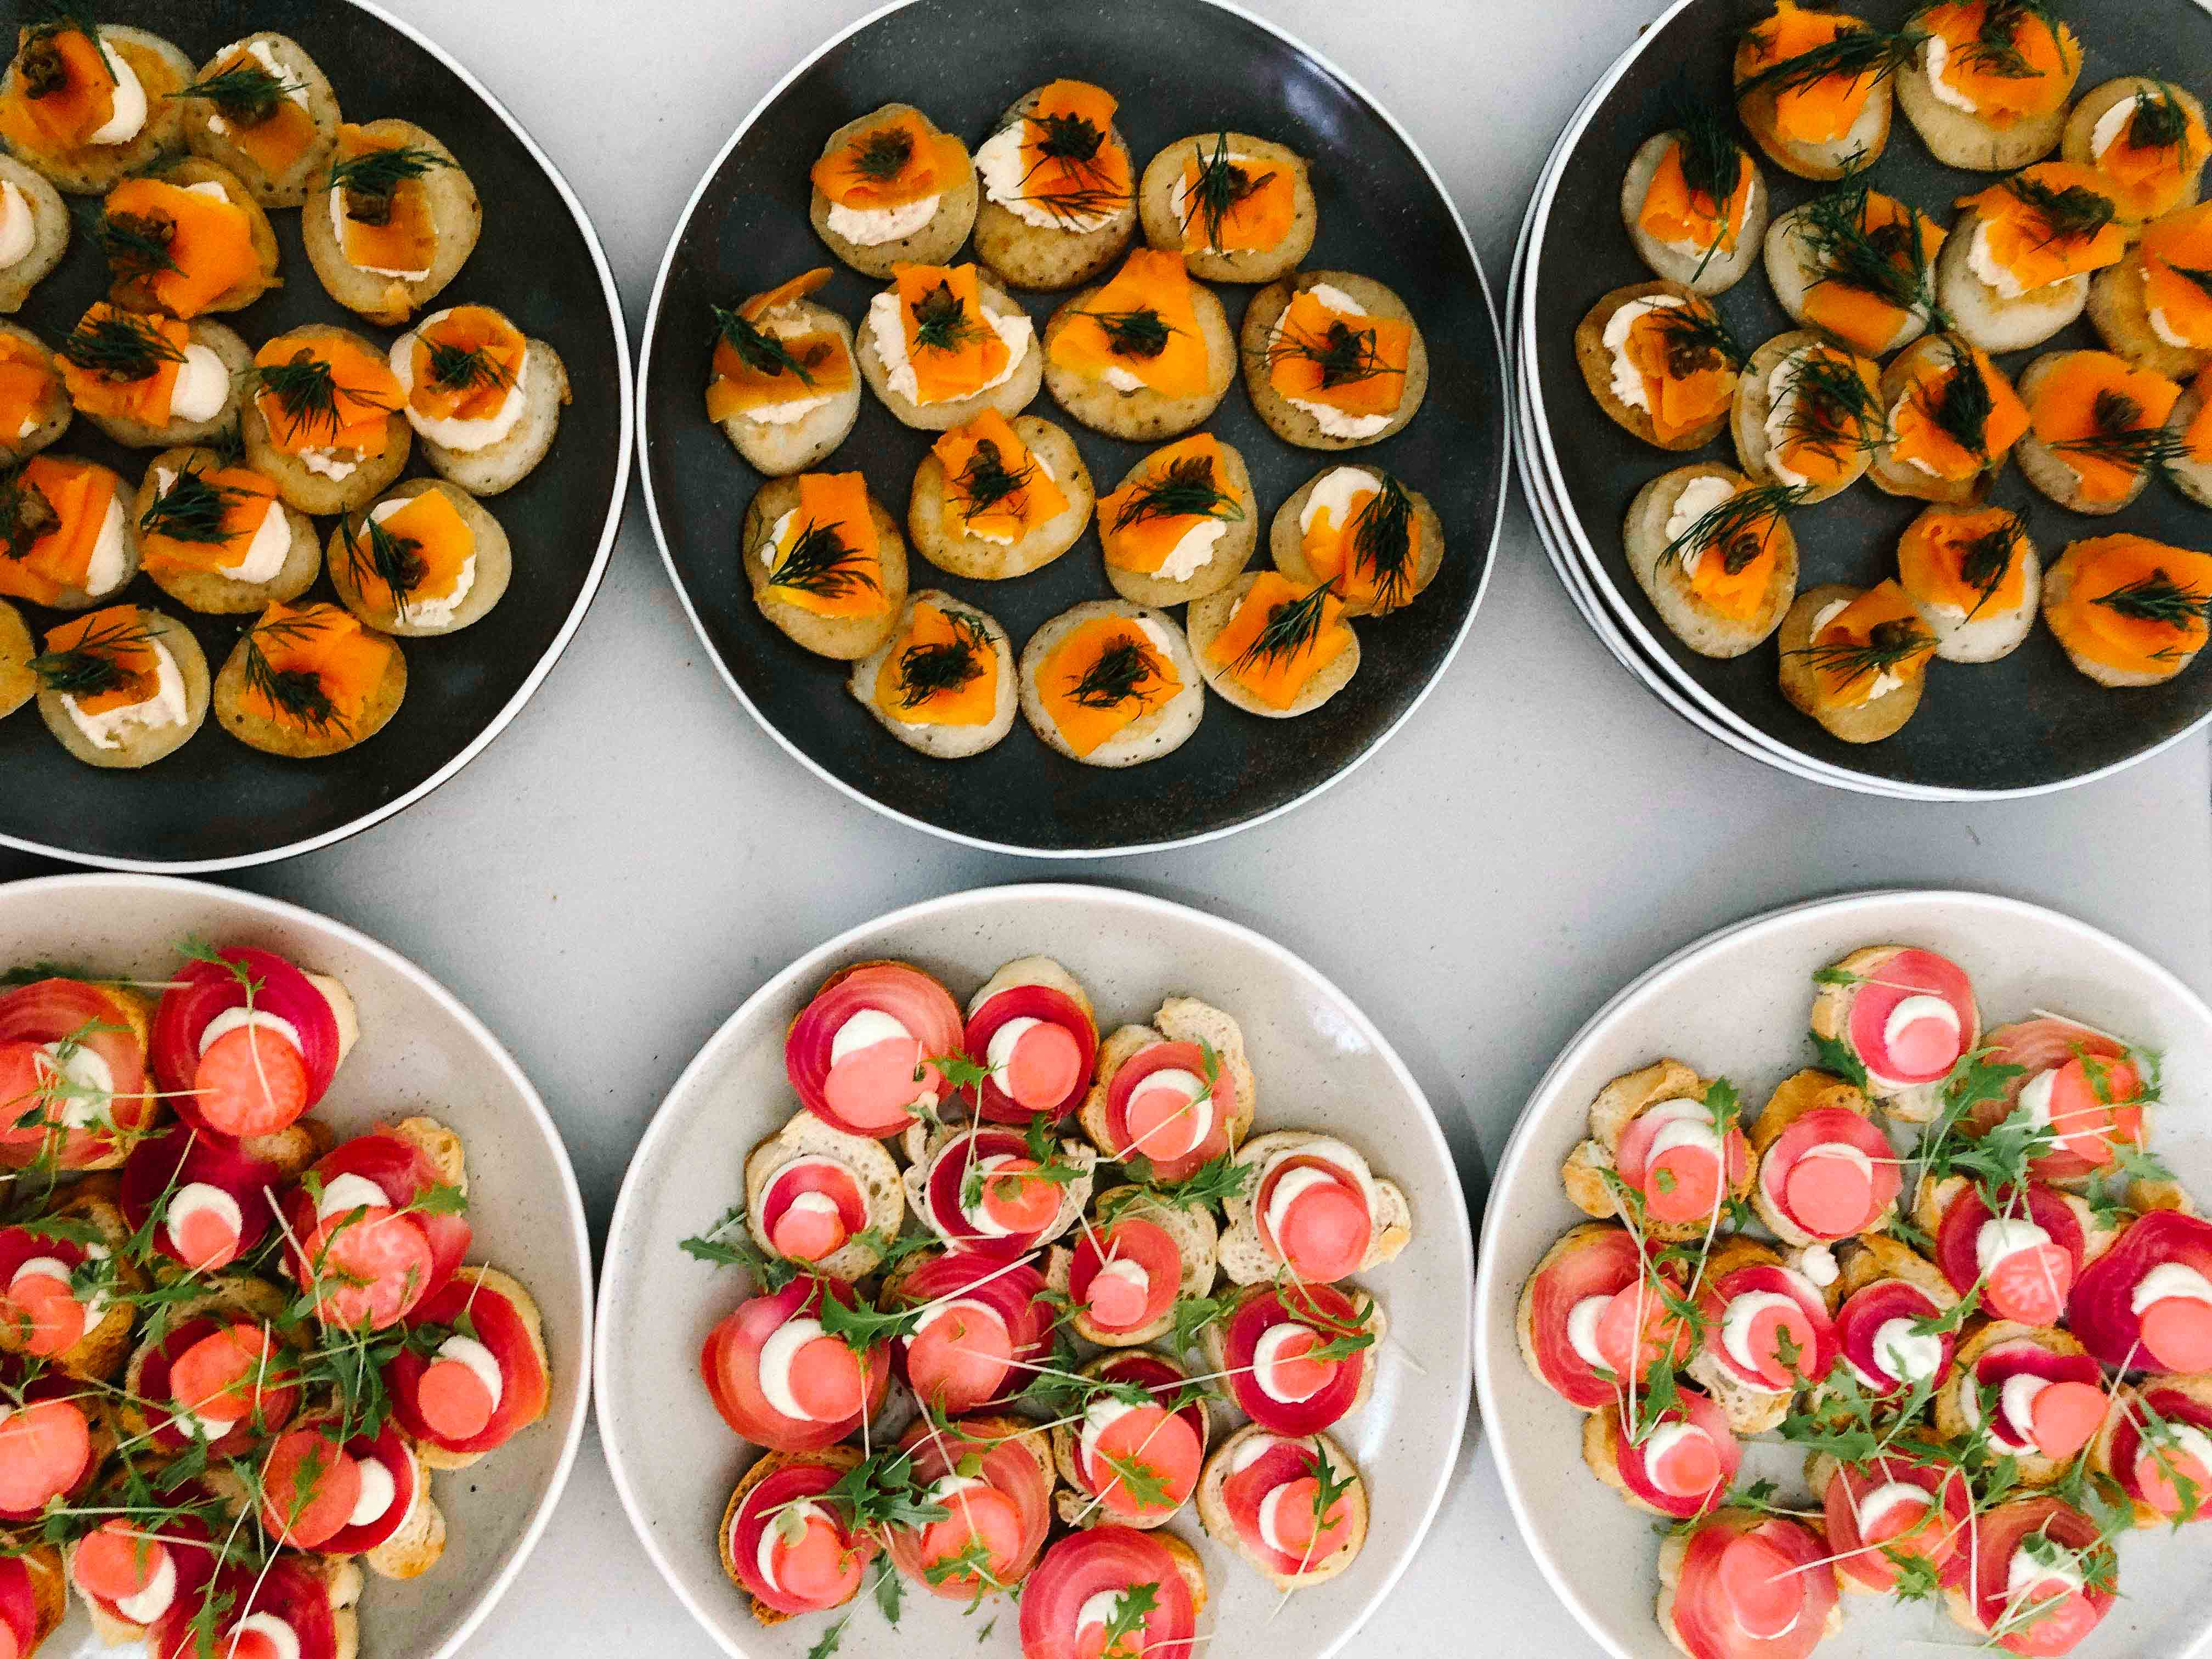 Vegan wedding and events catering by Tenielle Evans-4